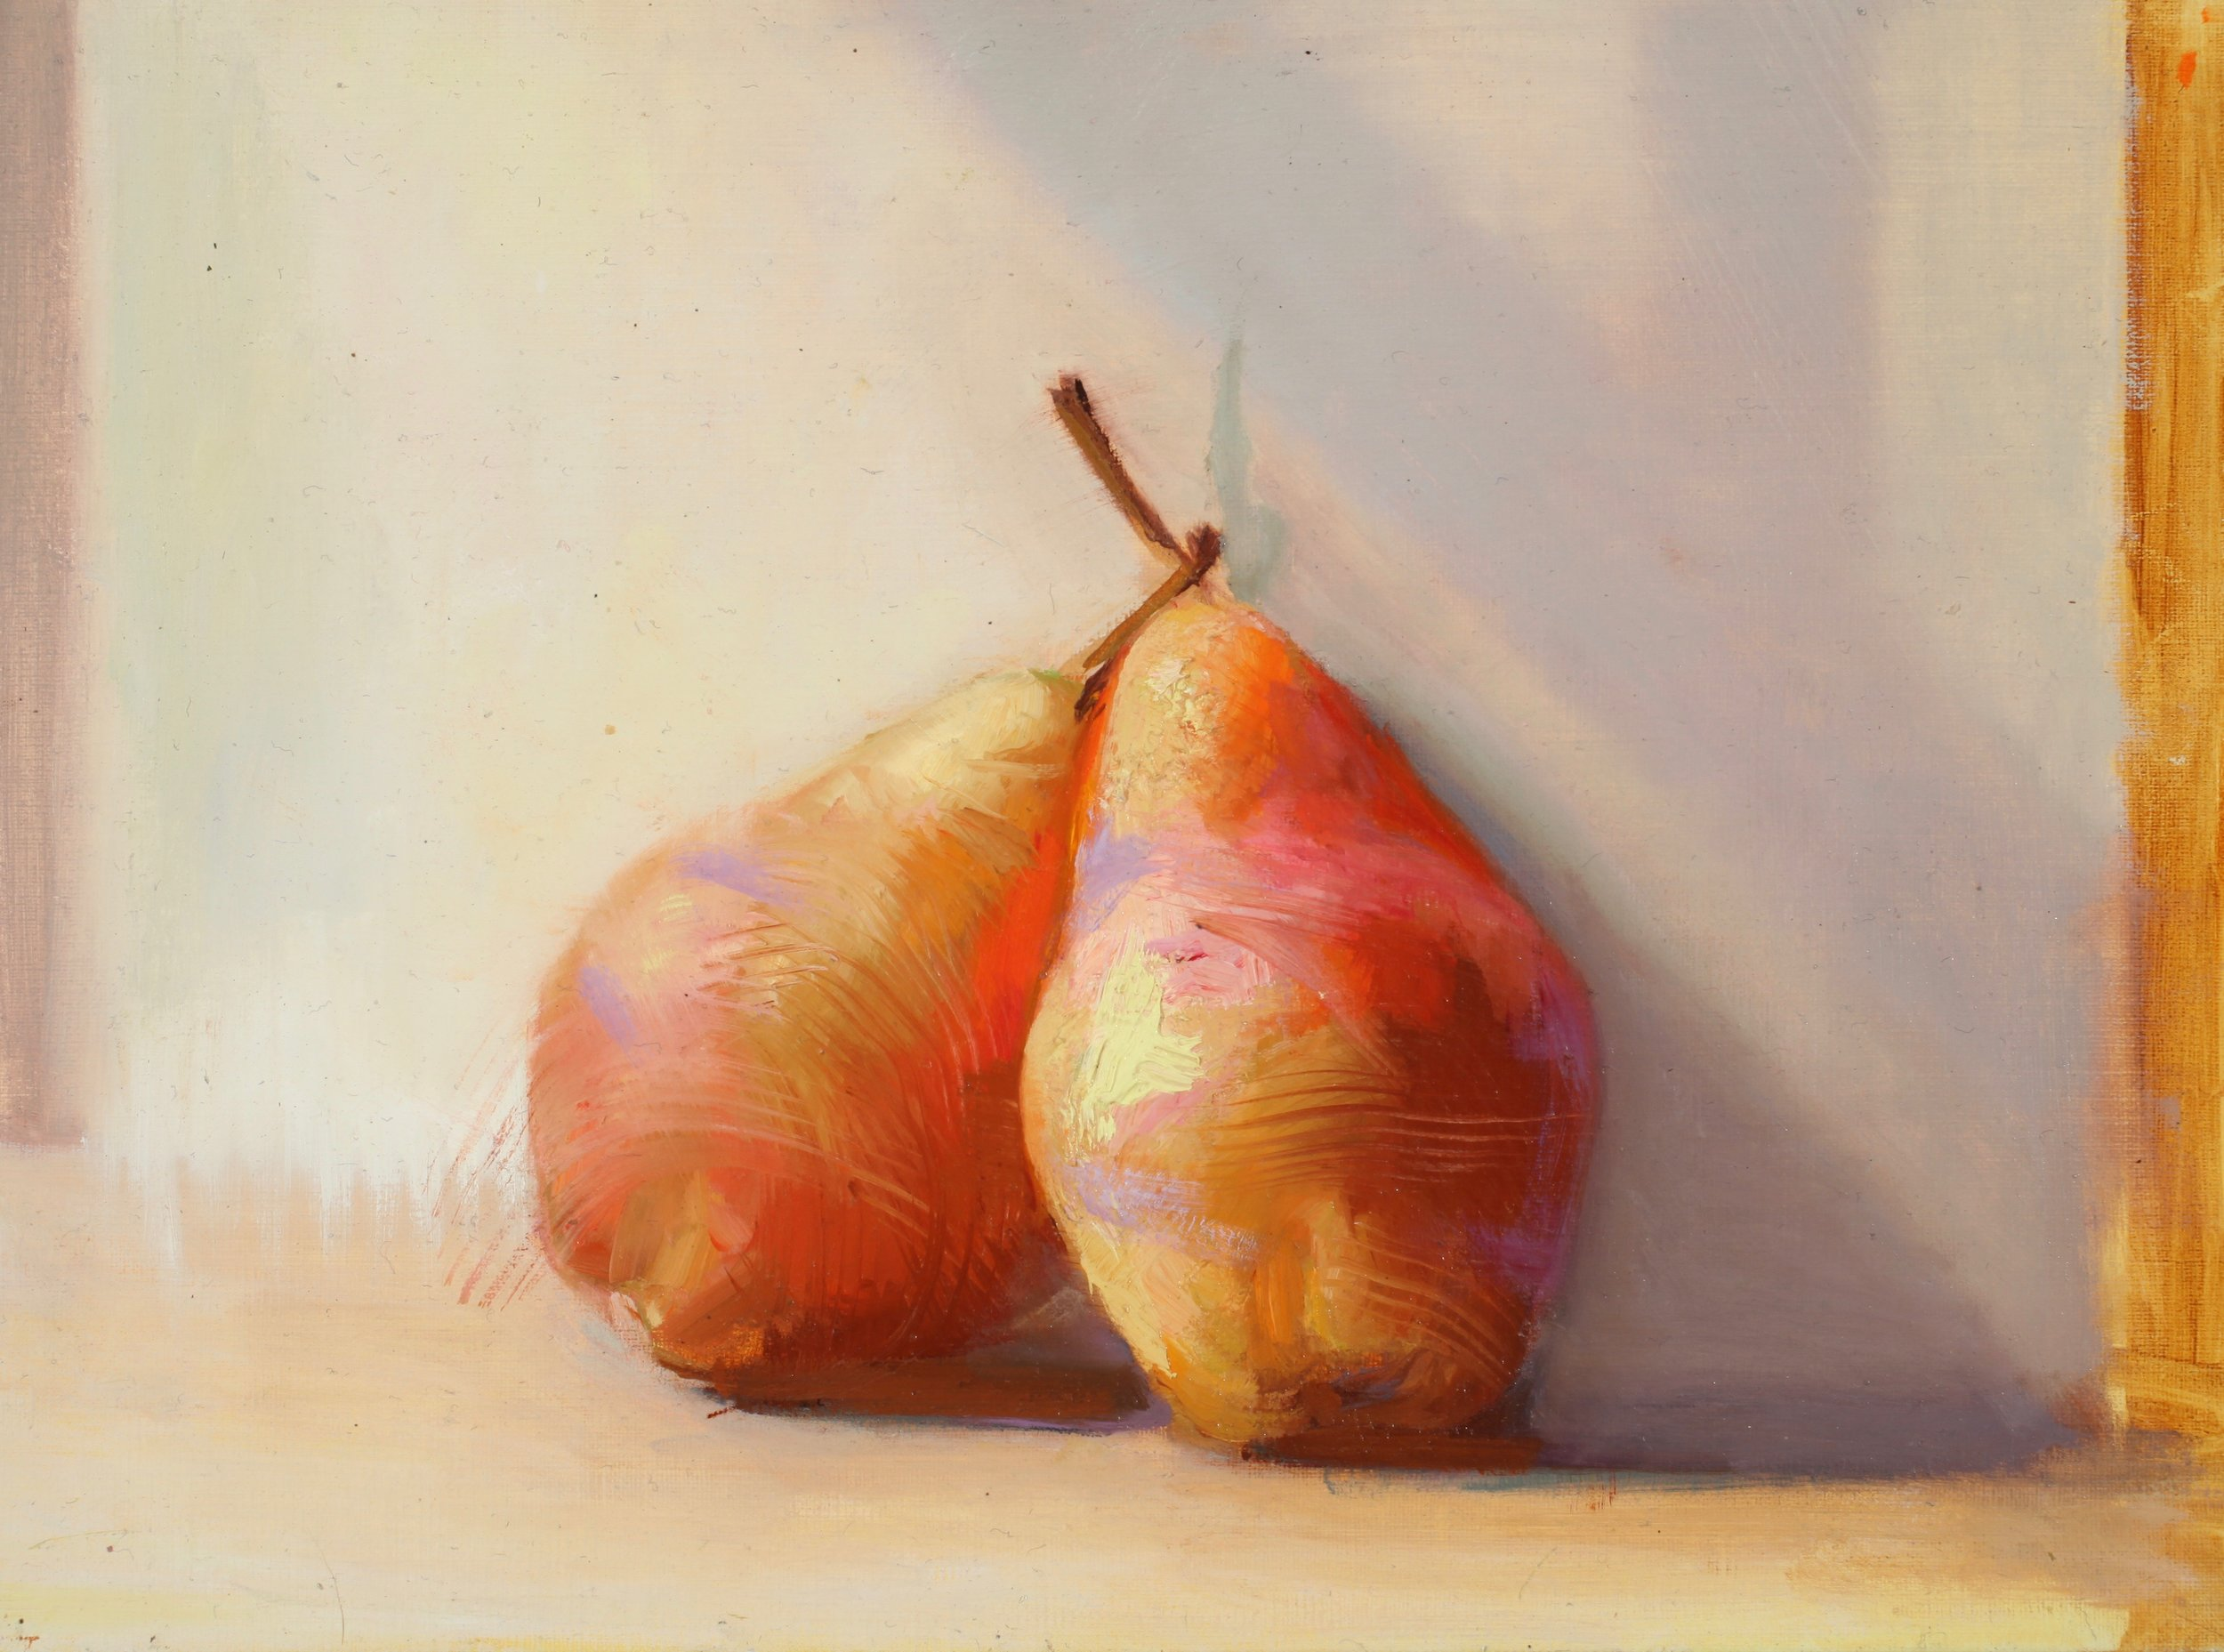 Aristides-Pears- oil on panel-2018-12x9.jpeg